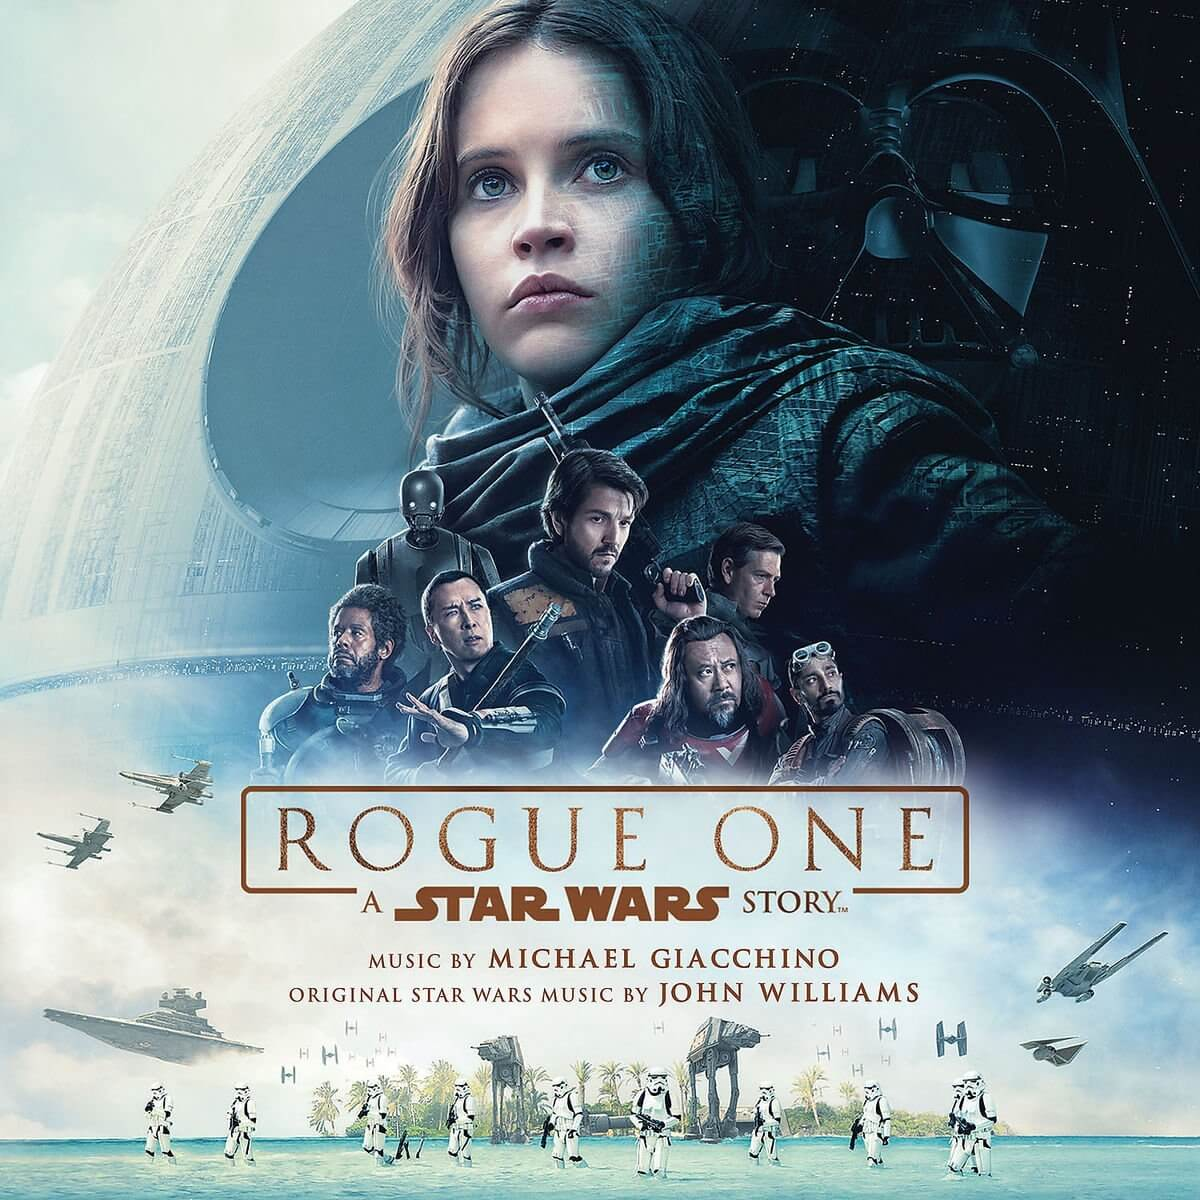 rogue-one-1-1